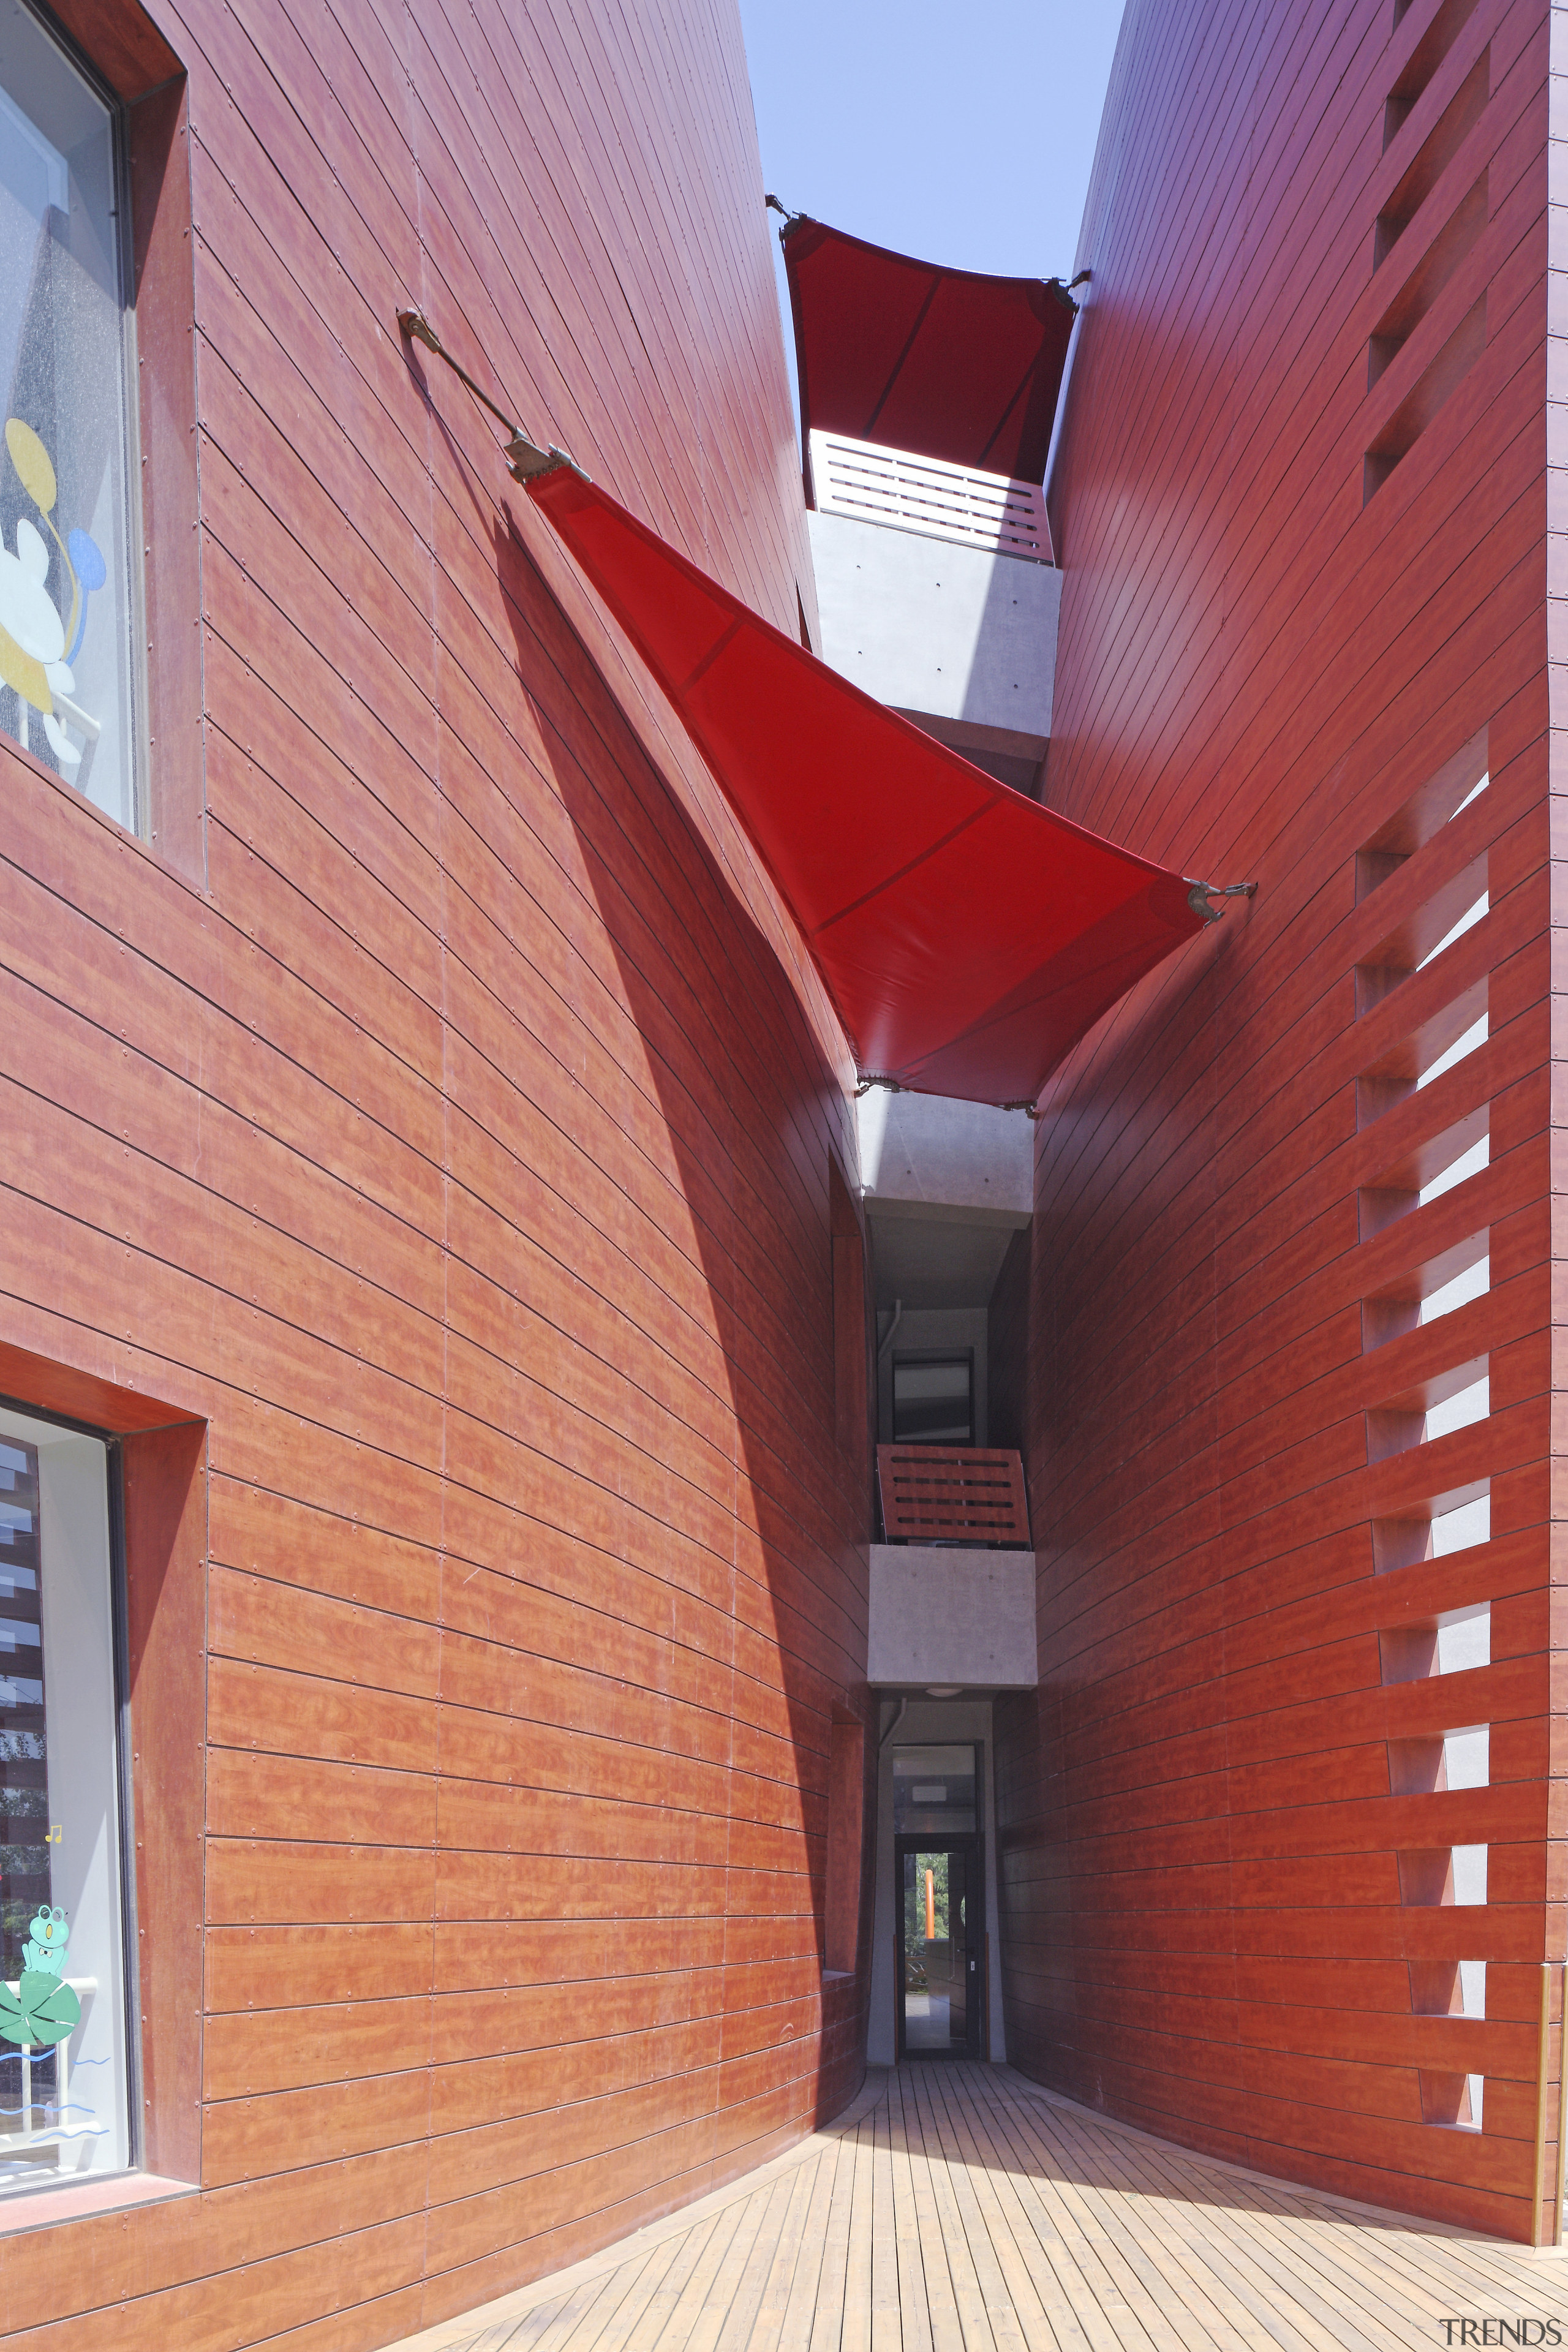 View of Dalian Preschool, with curvilinear forms and architecture, brick, building, ceiling, daylighting, facade, house, real estate, wall, red